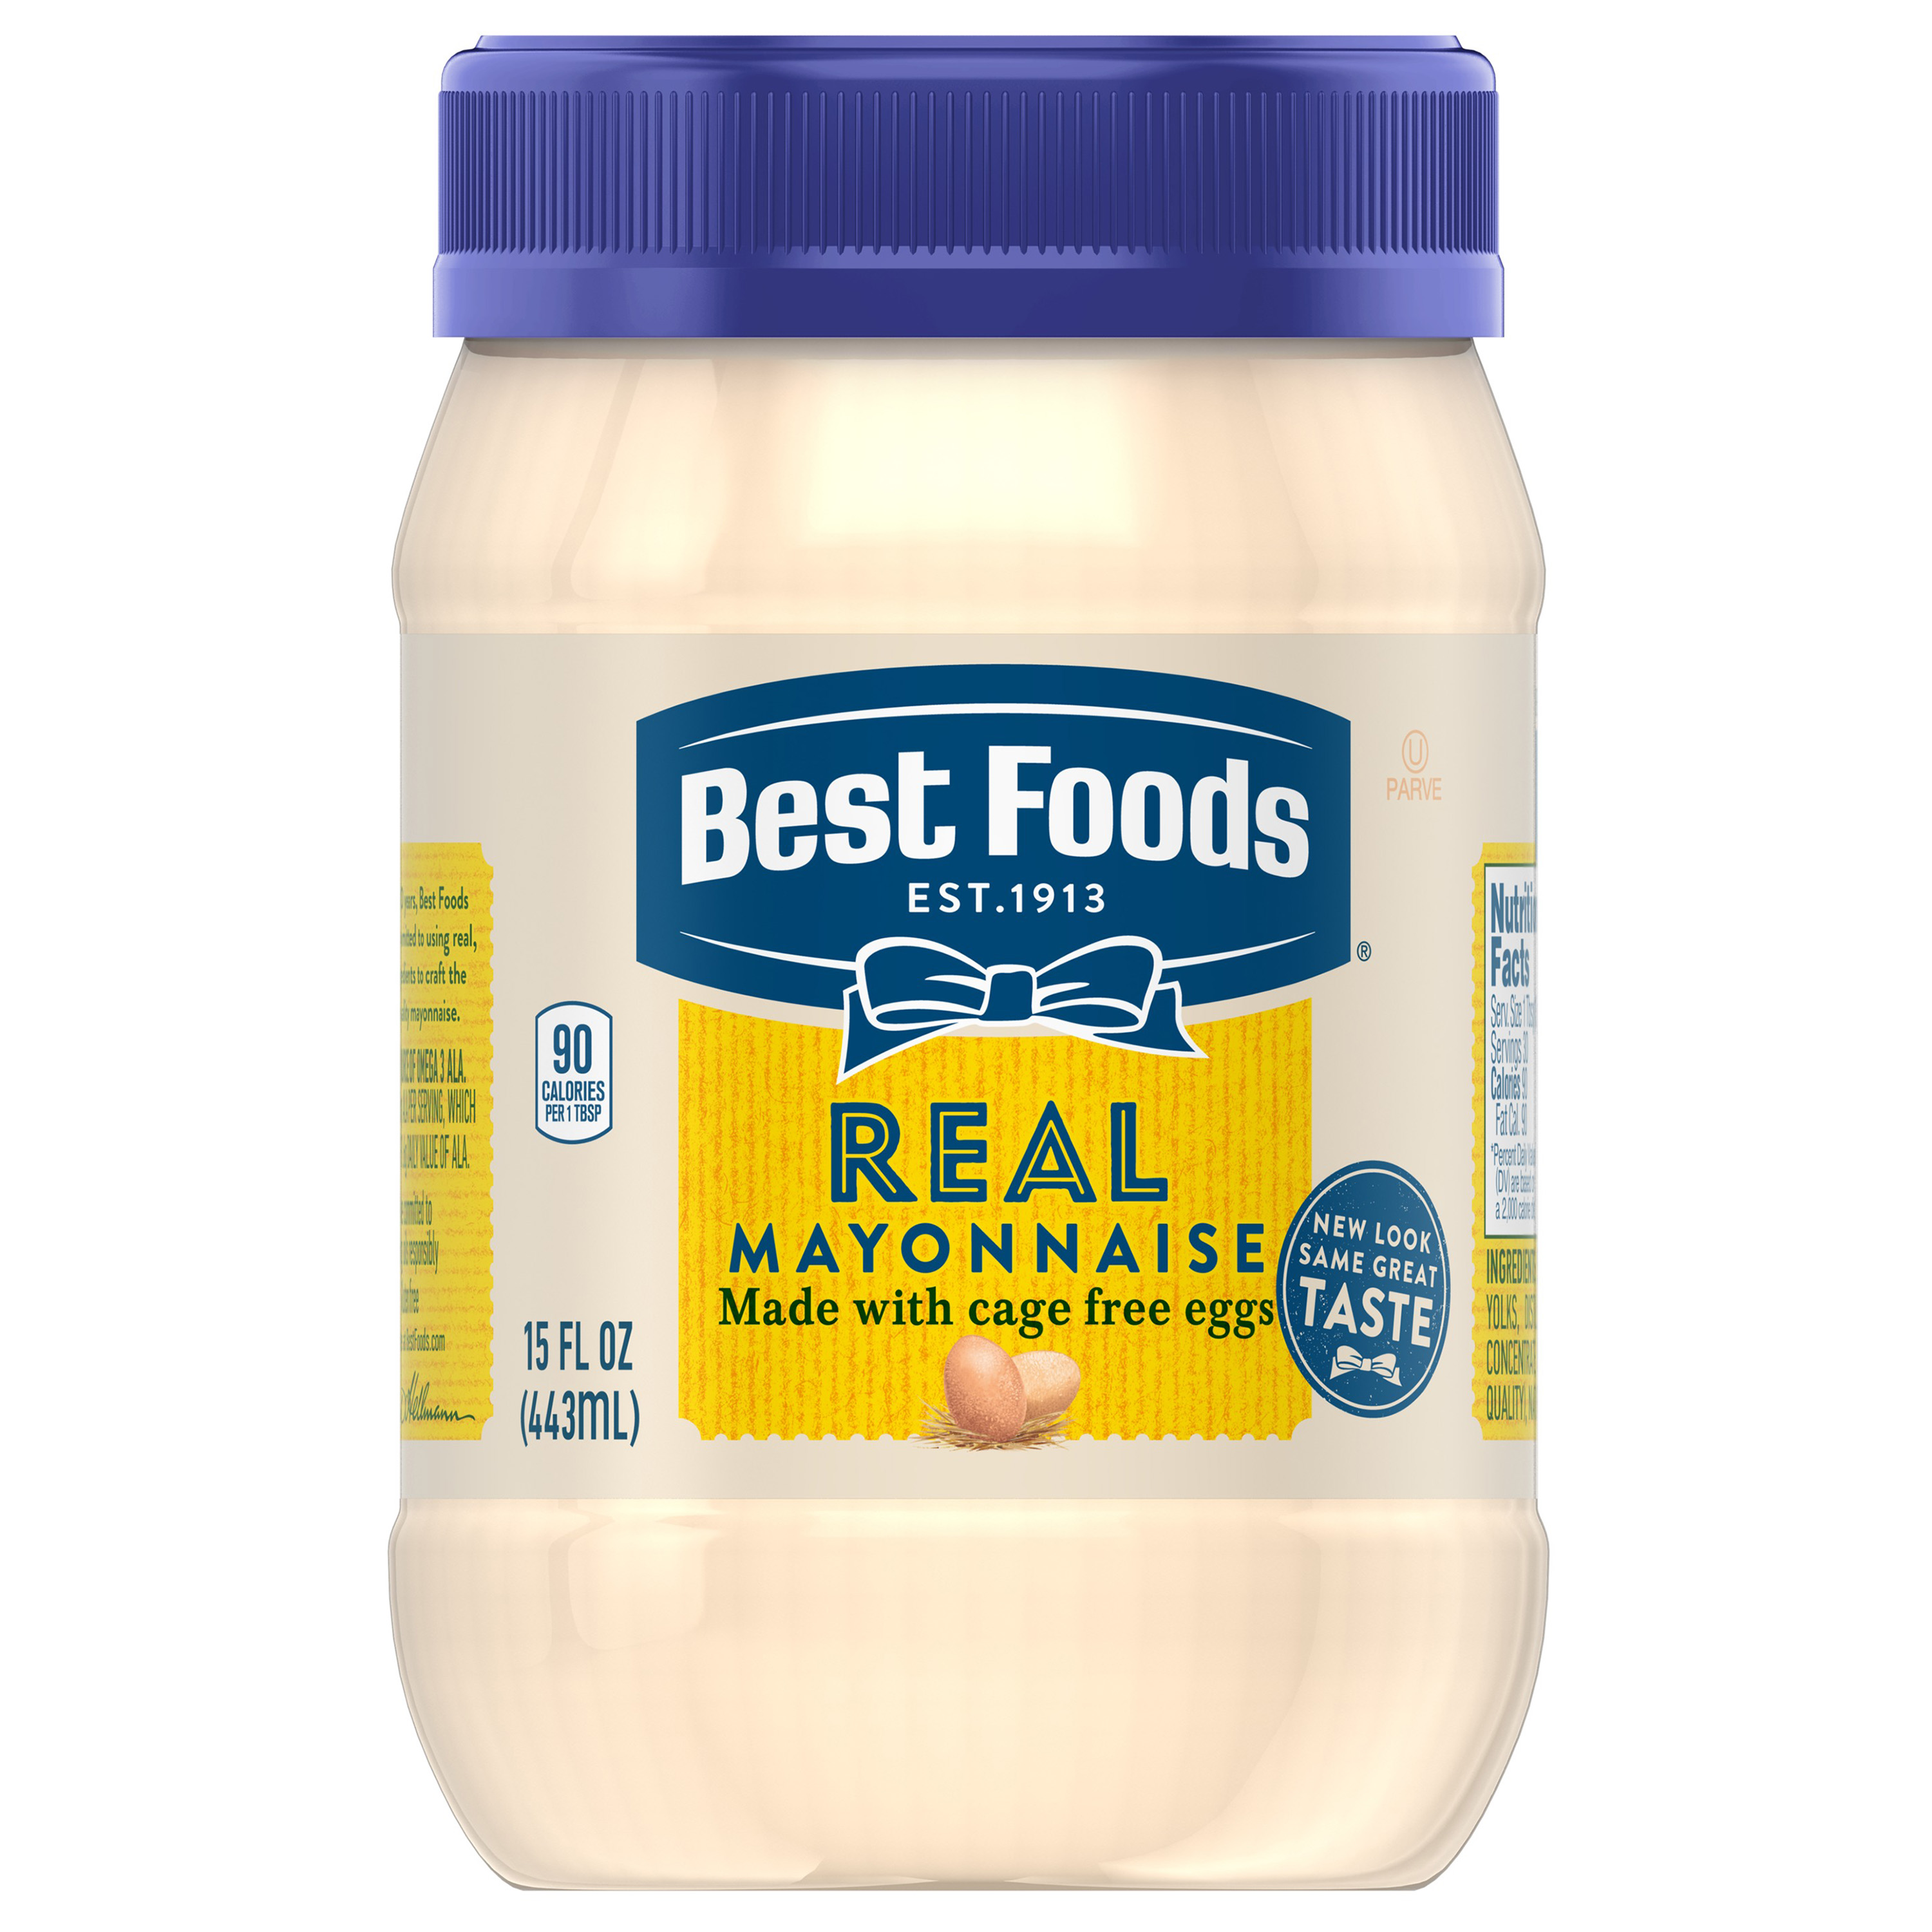 Best Foods Real Mayonnaise, 15 oz